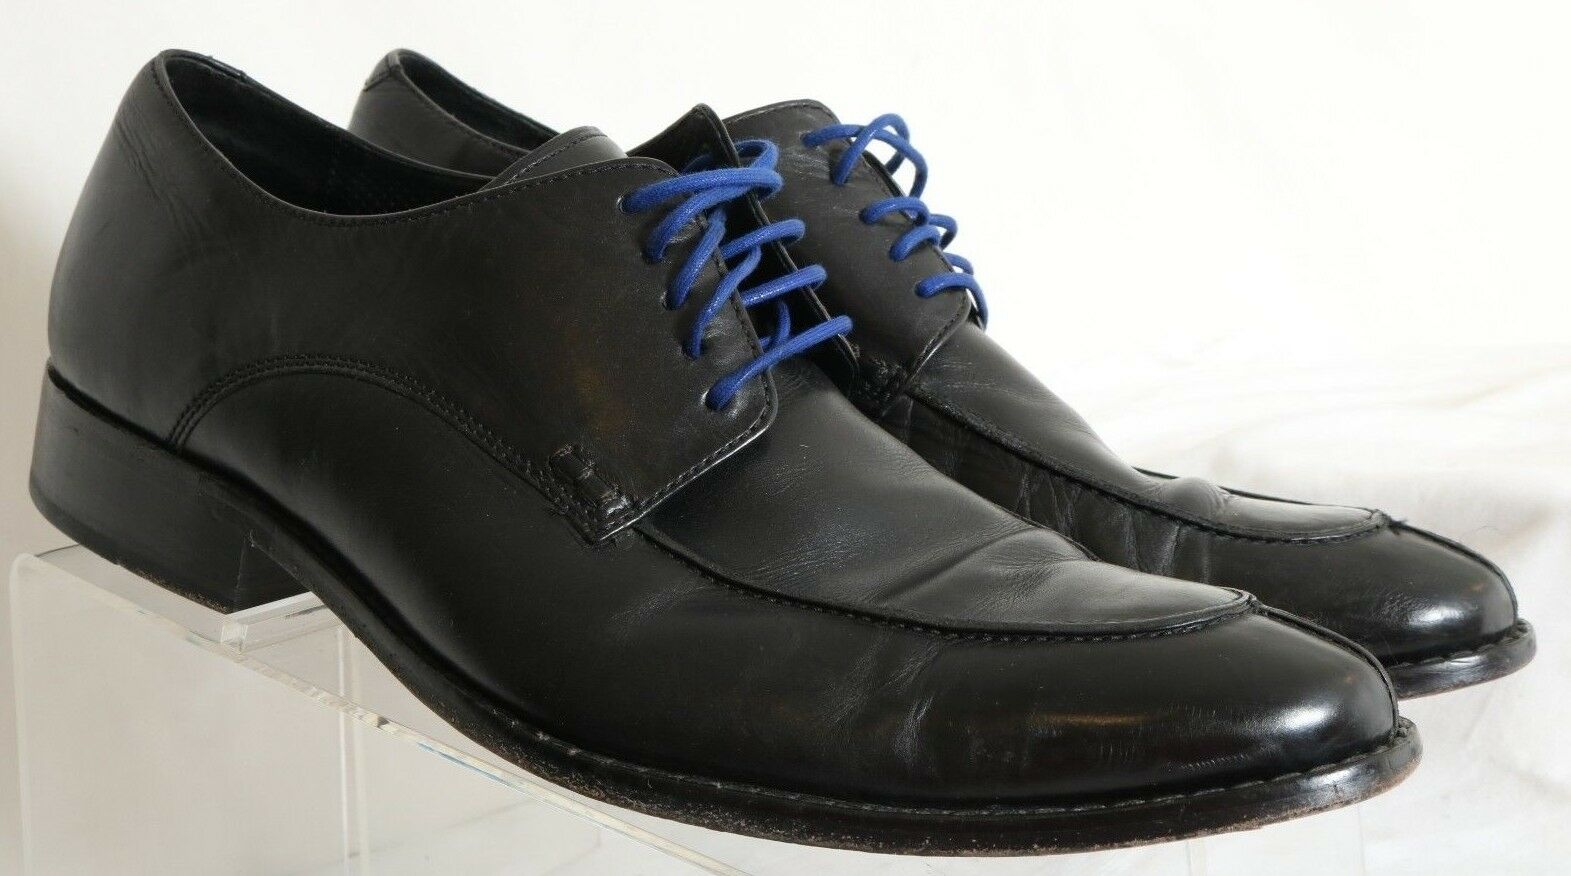 Cole Haan Air Colton Black Split Toe Lace-Up Casual Oxford C08188 Men's 11 M